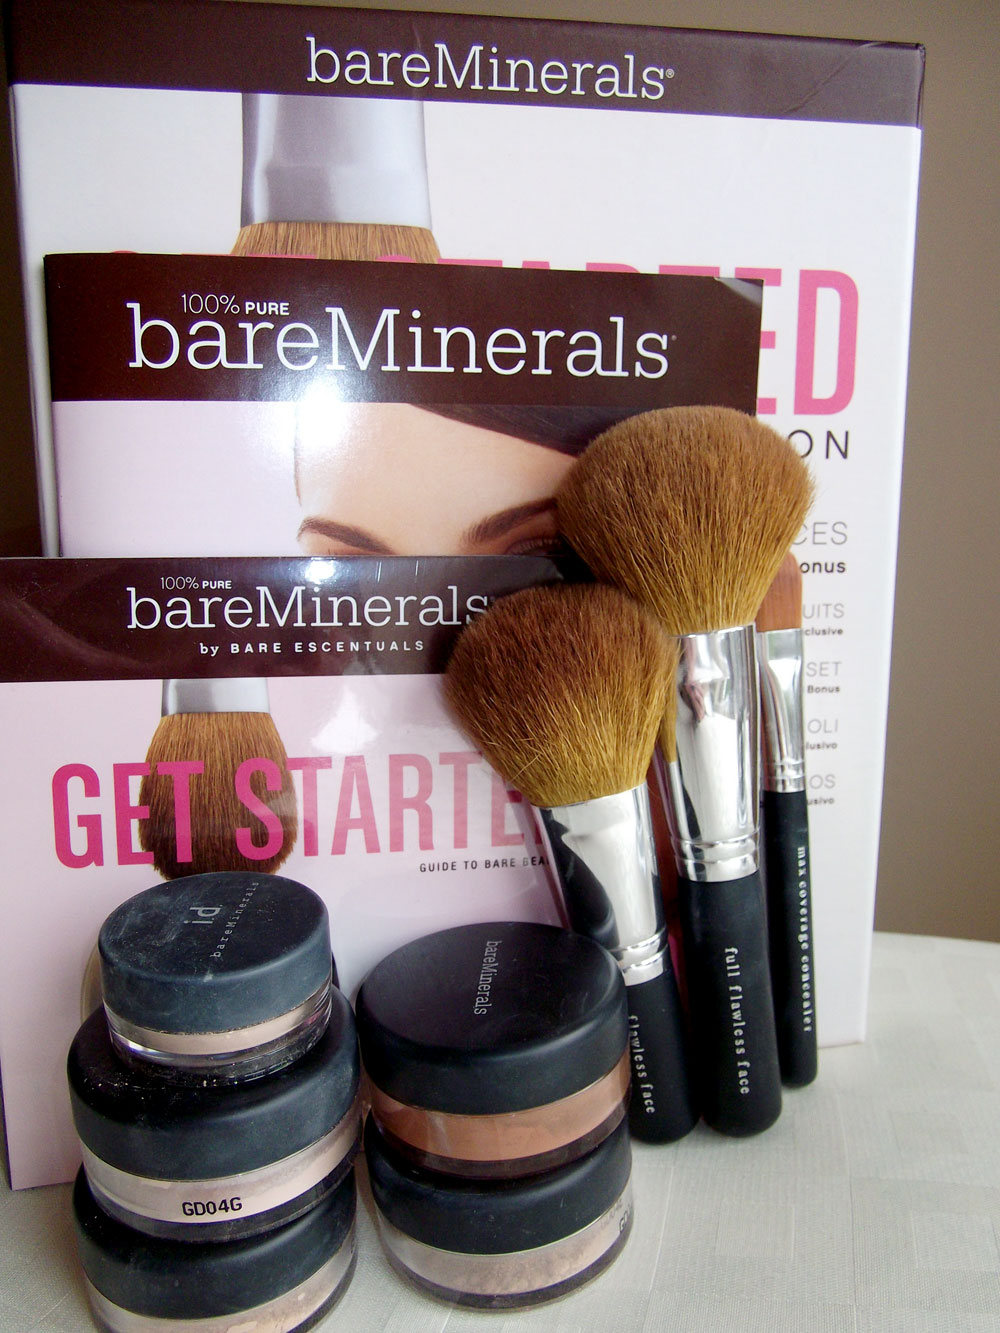 how to make bare minerals not cakey